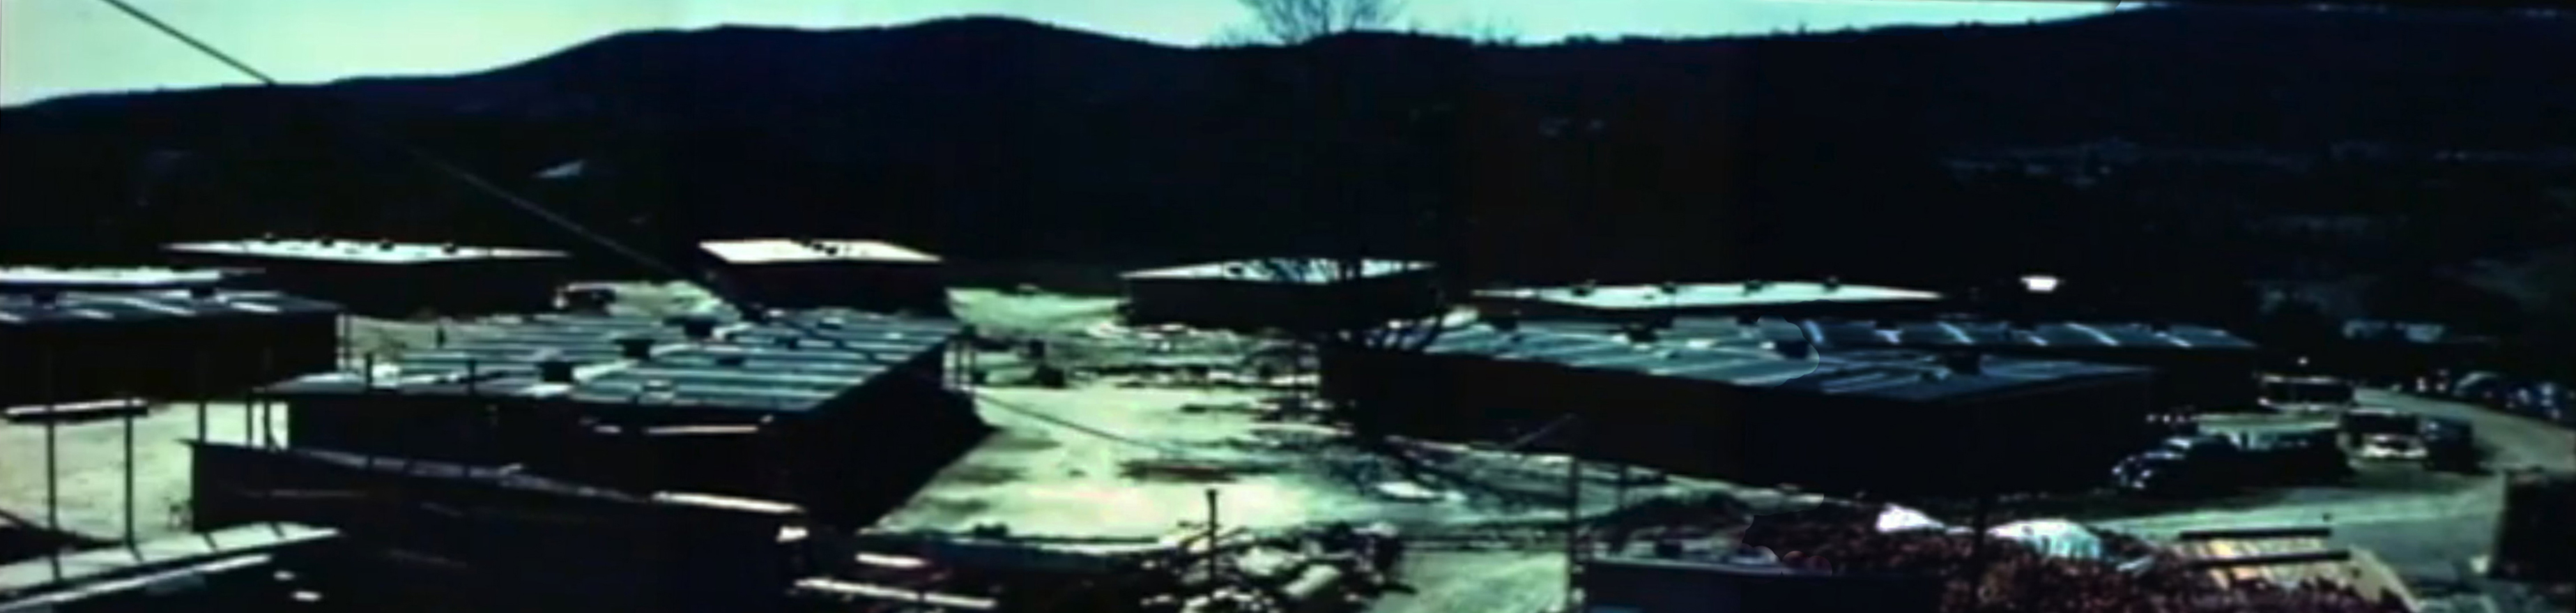 composite of stills from 1946 film showing Wigwam Circle west of Thayer School, Hanover, N.H.